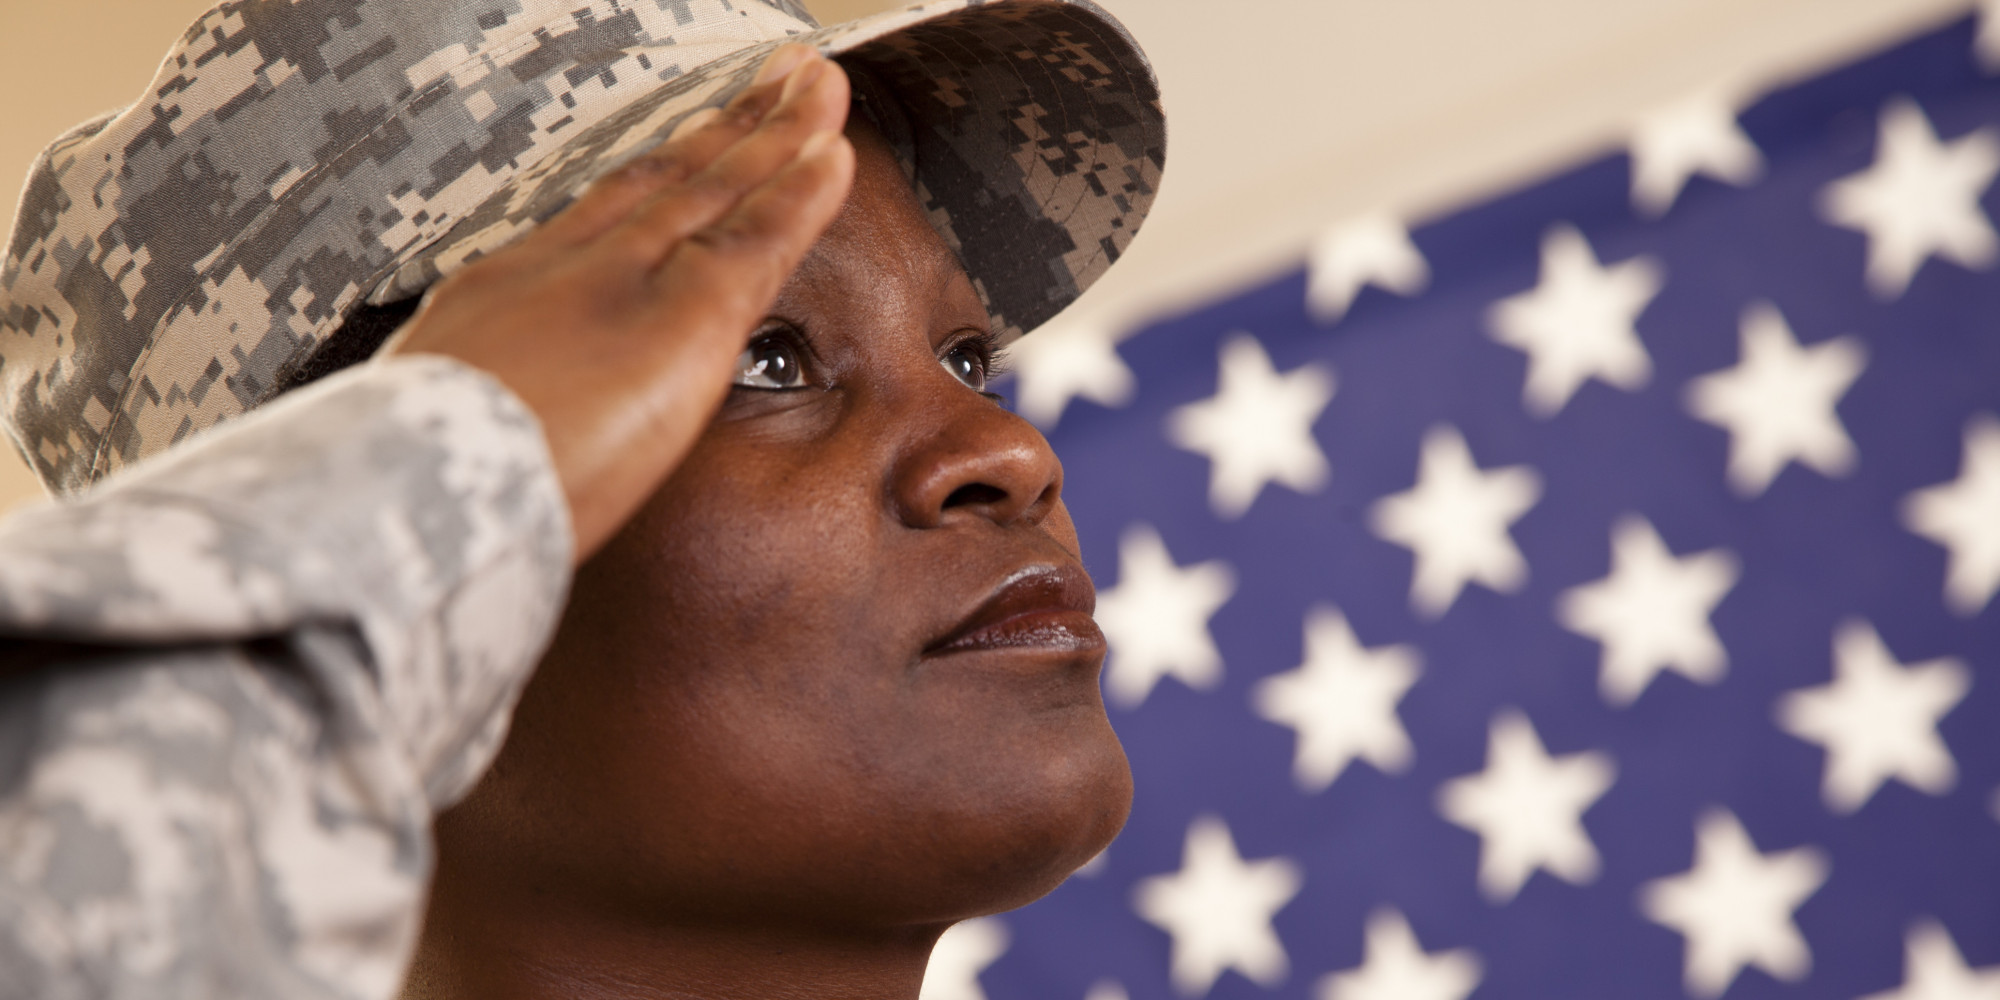 Patriotism: African descent military woman salutes American flag.